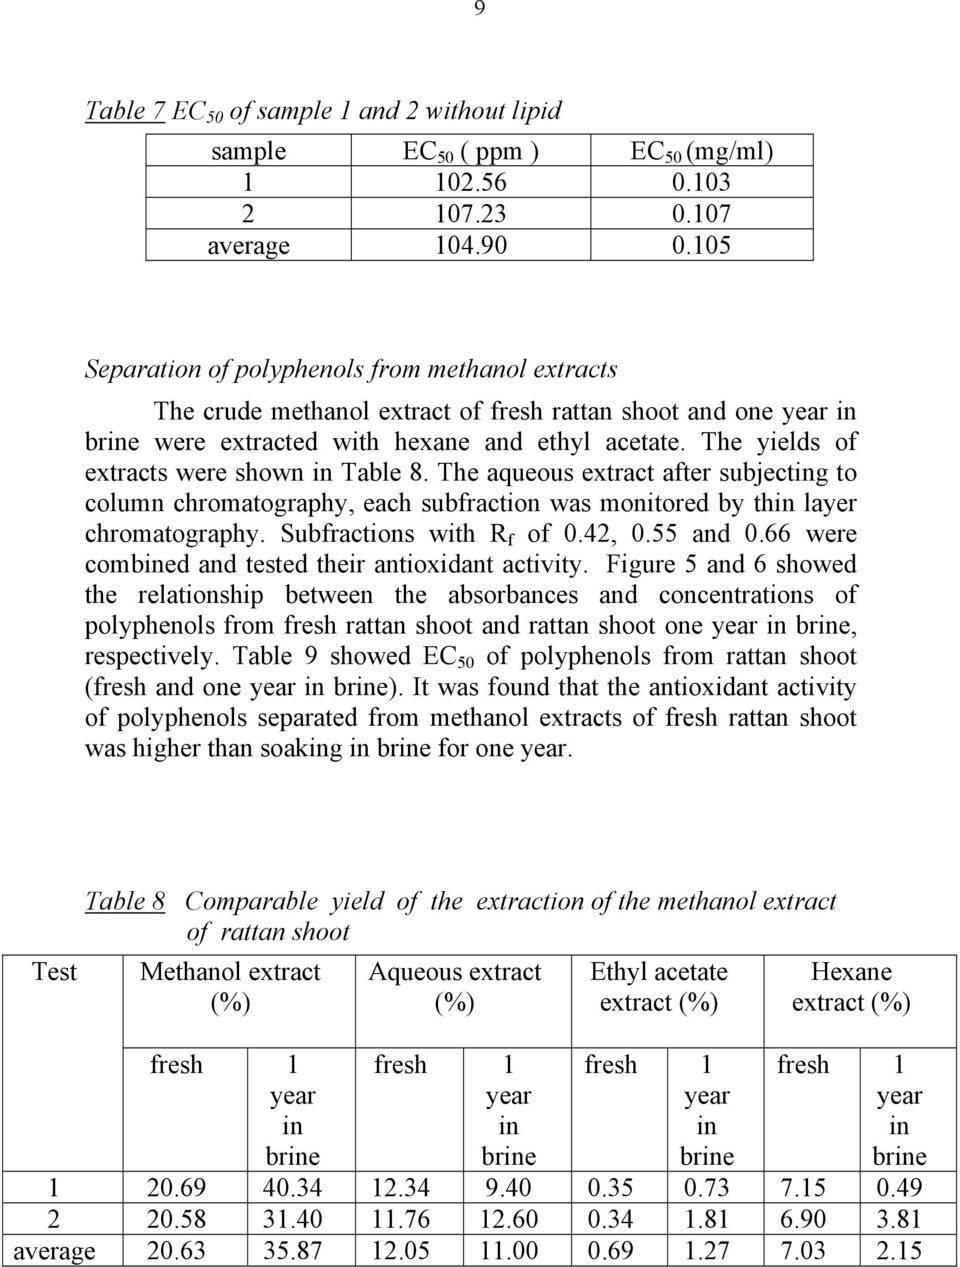 The yields of extracts were shown in Table 8. The aqueous extract after subjecting to column chromatography, each subfraction was monitored by thin layer chromatography. Subfractions with R f of 0.